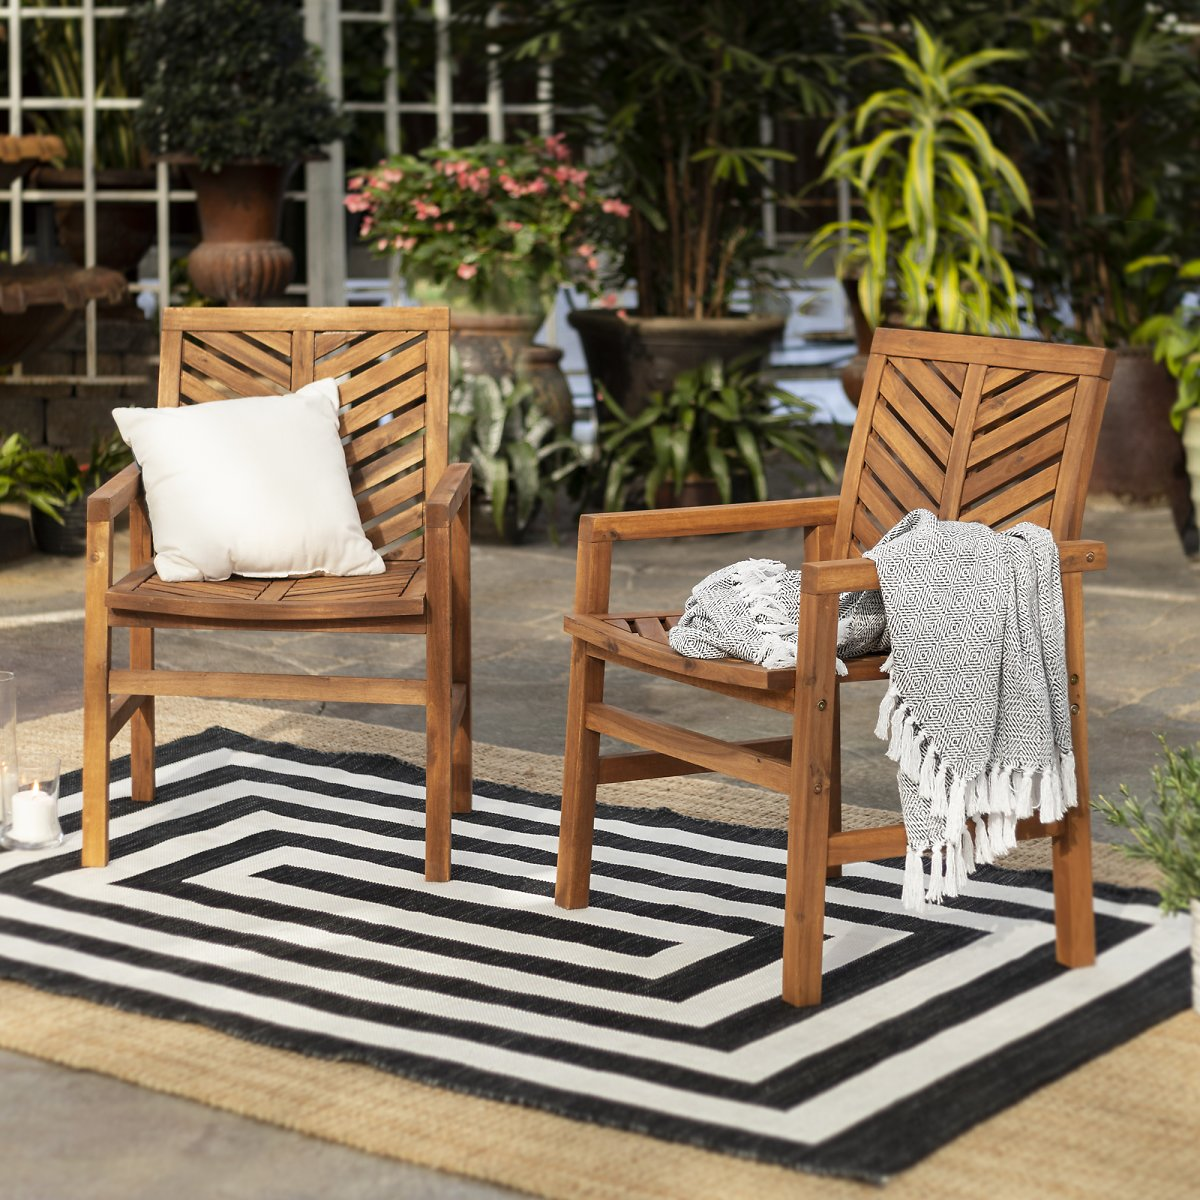 Brown Chevron Outdoor Wood Patio Chairs By Manor Park, Set of 2